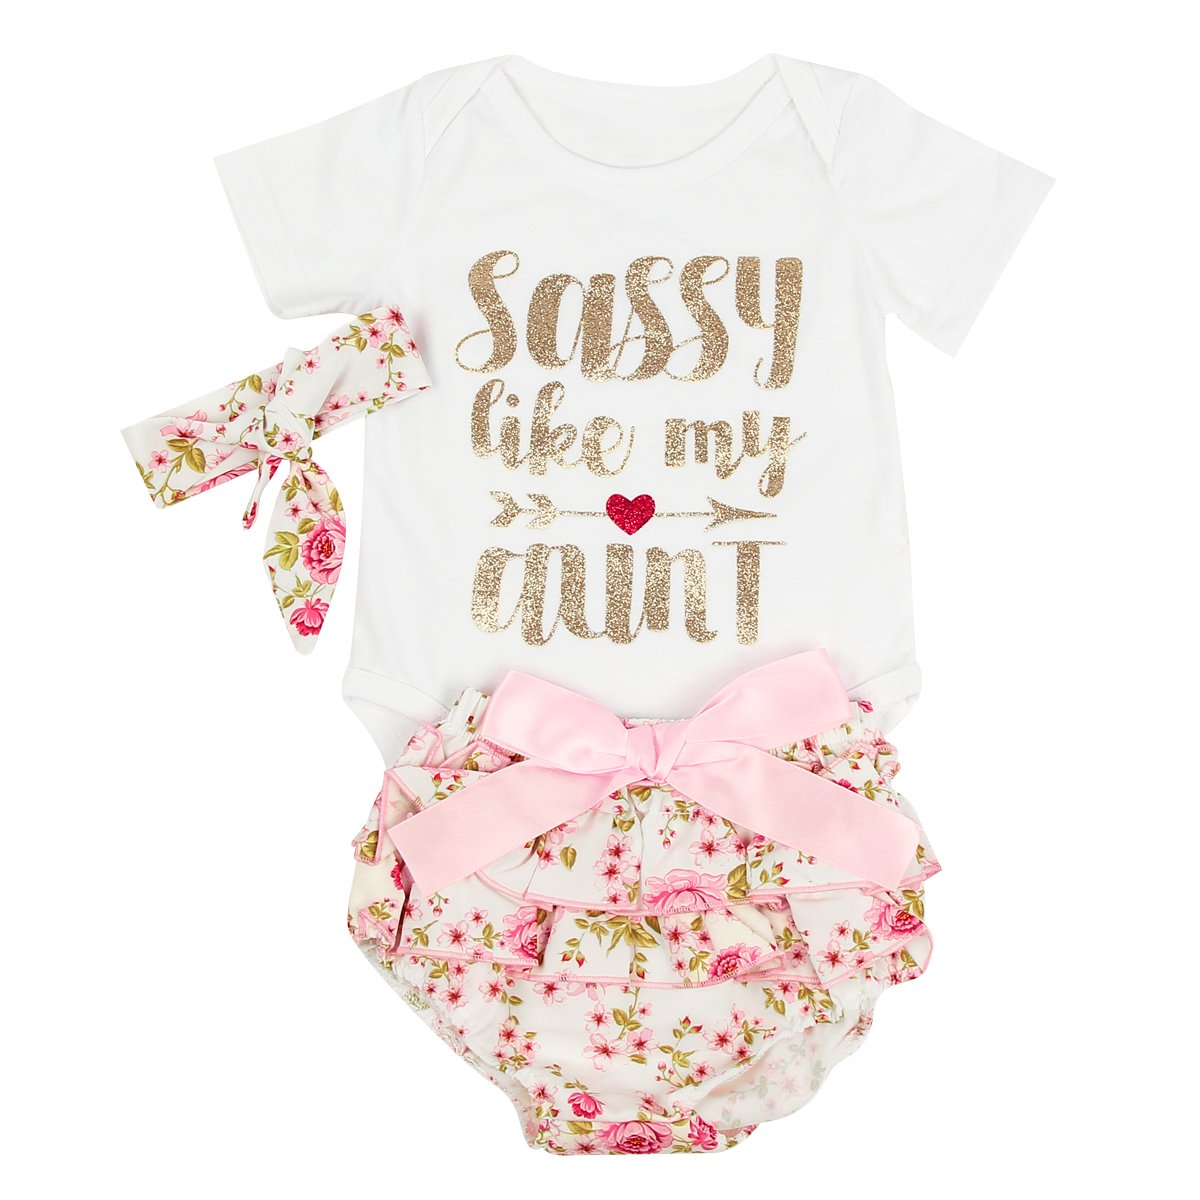 puseky 0-24M Infant Baby Girls Letters Romper+Floral Shorts+Headband Clothes Set (6-12 Months, White+Floral)